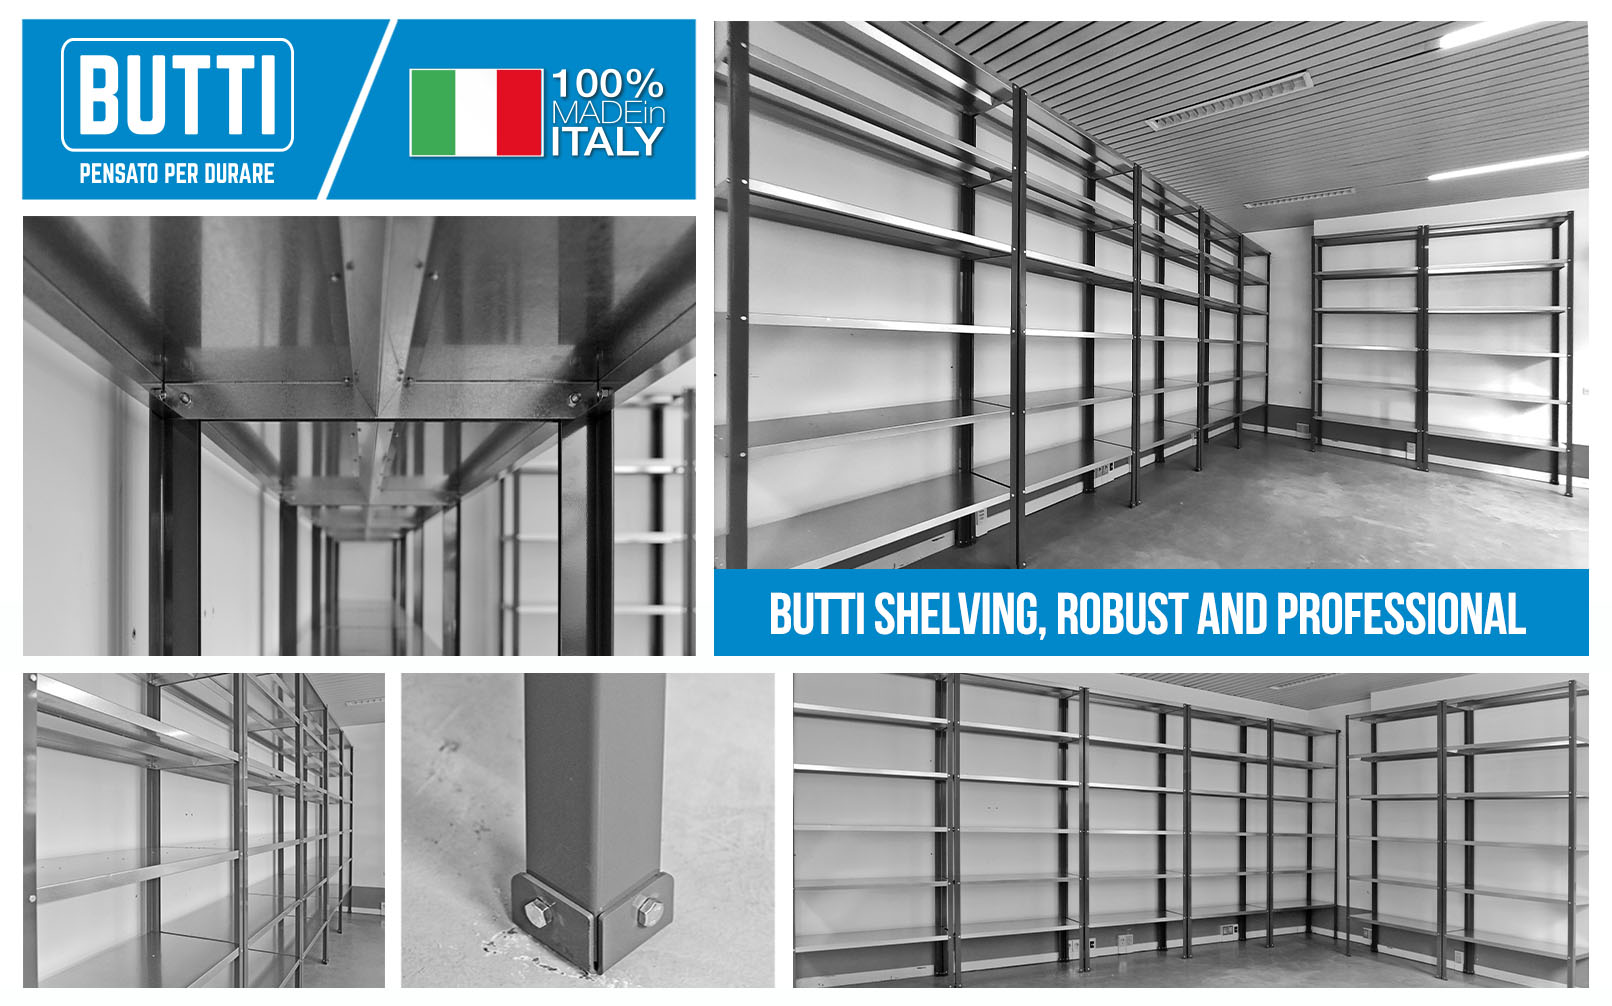 BUTTI SHELVING, ROBUST AND PROFESSIONAL